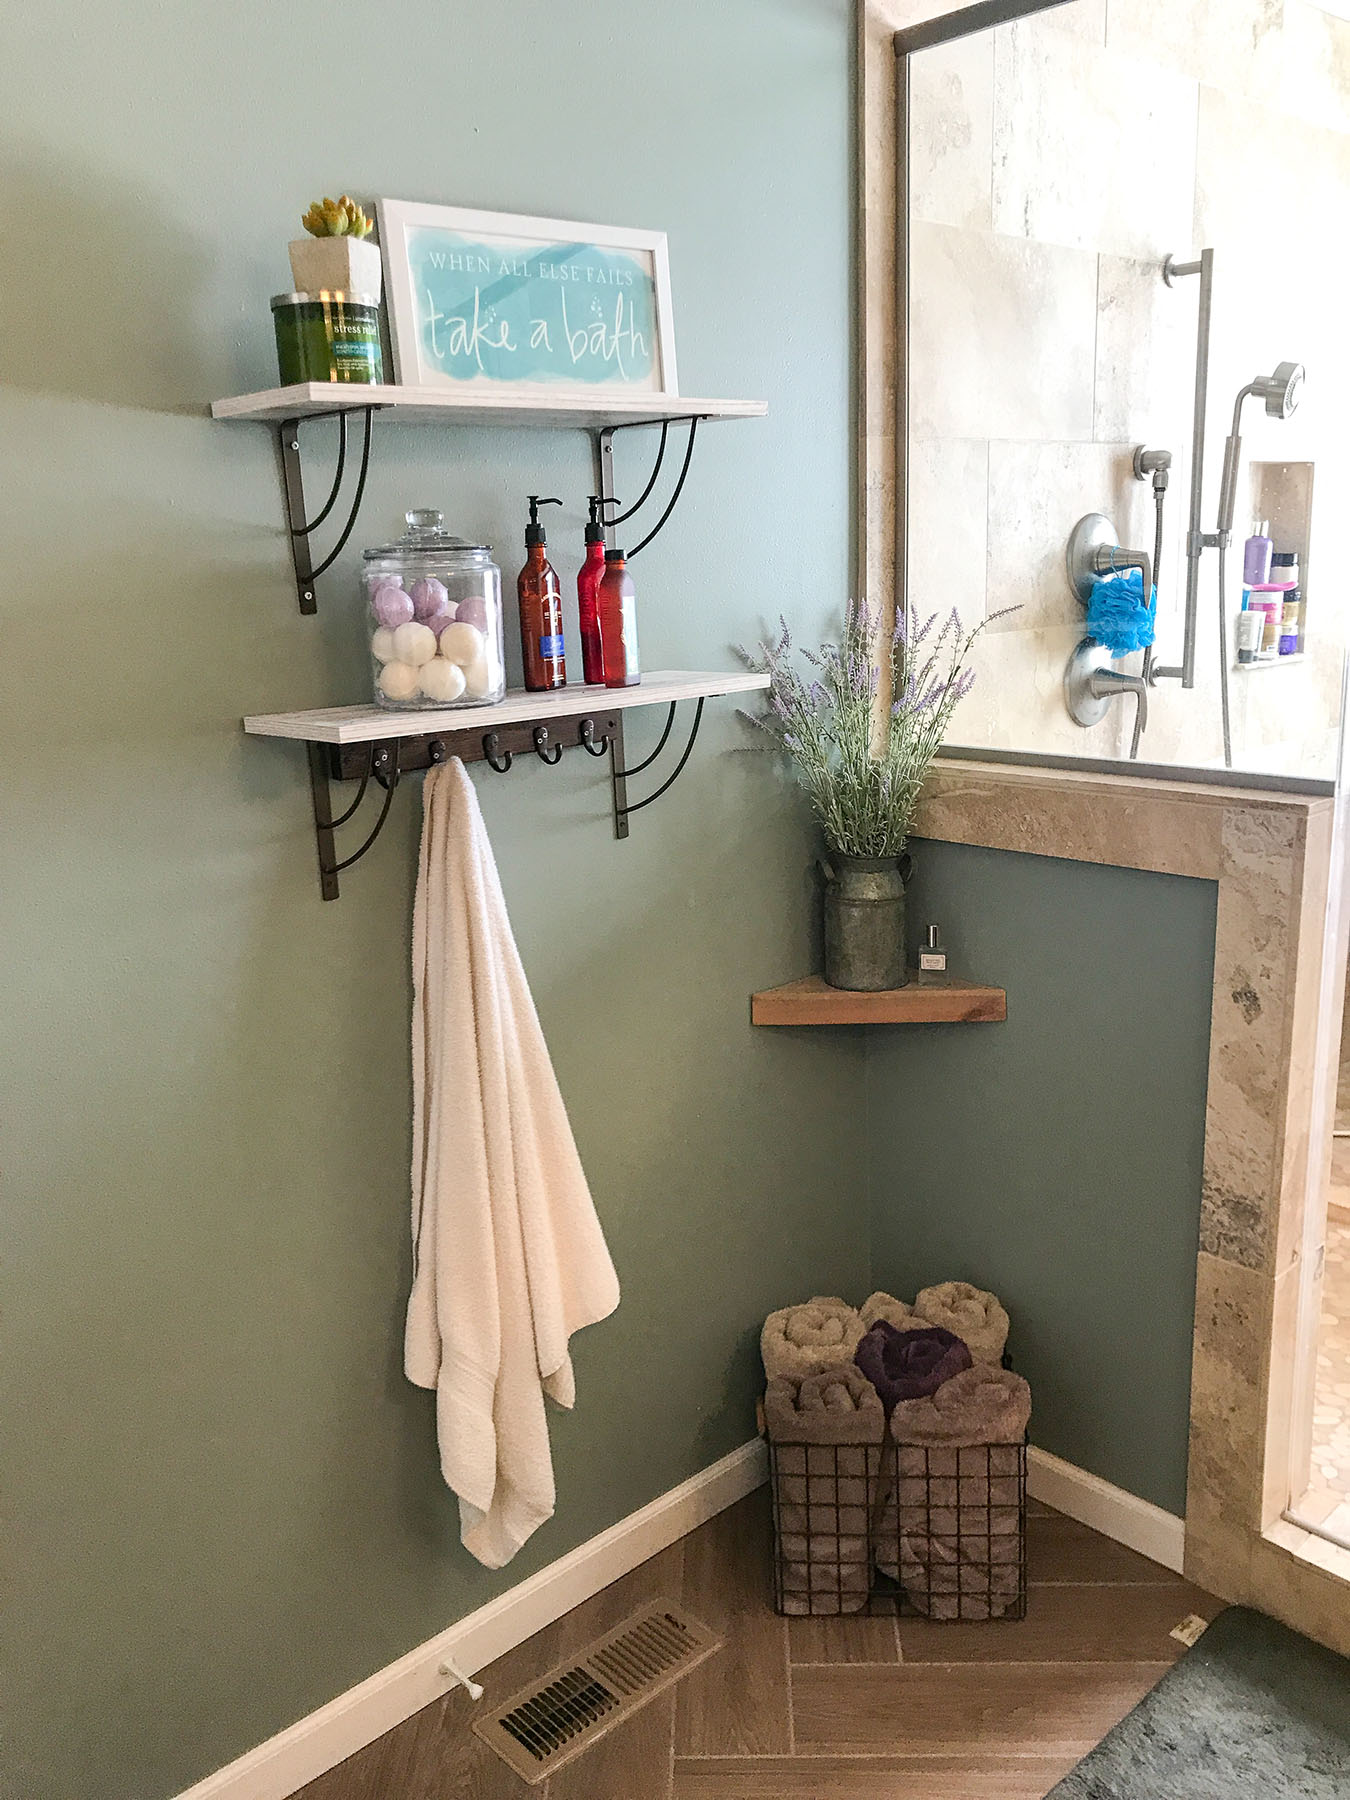 HOME UPDATE: Our Master Bathroom